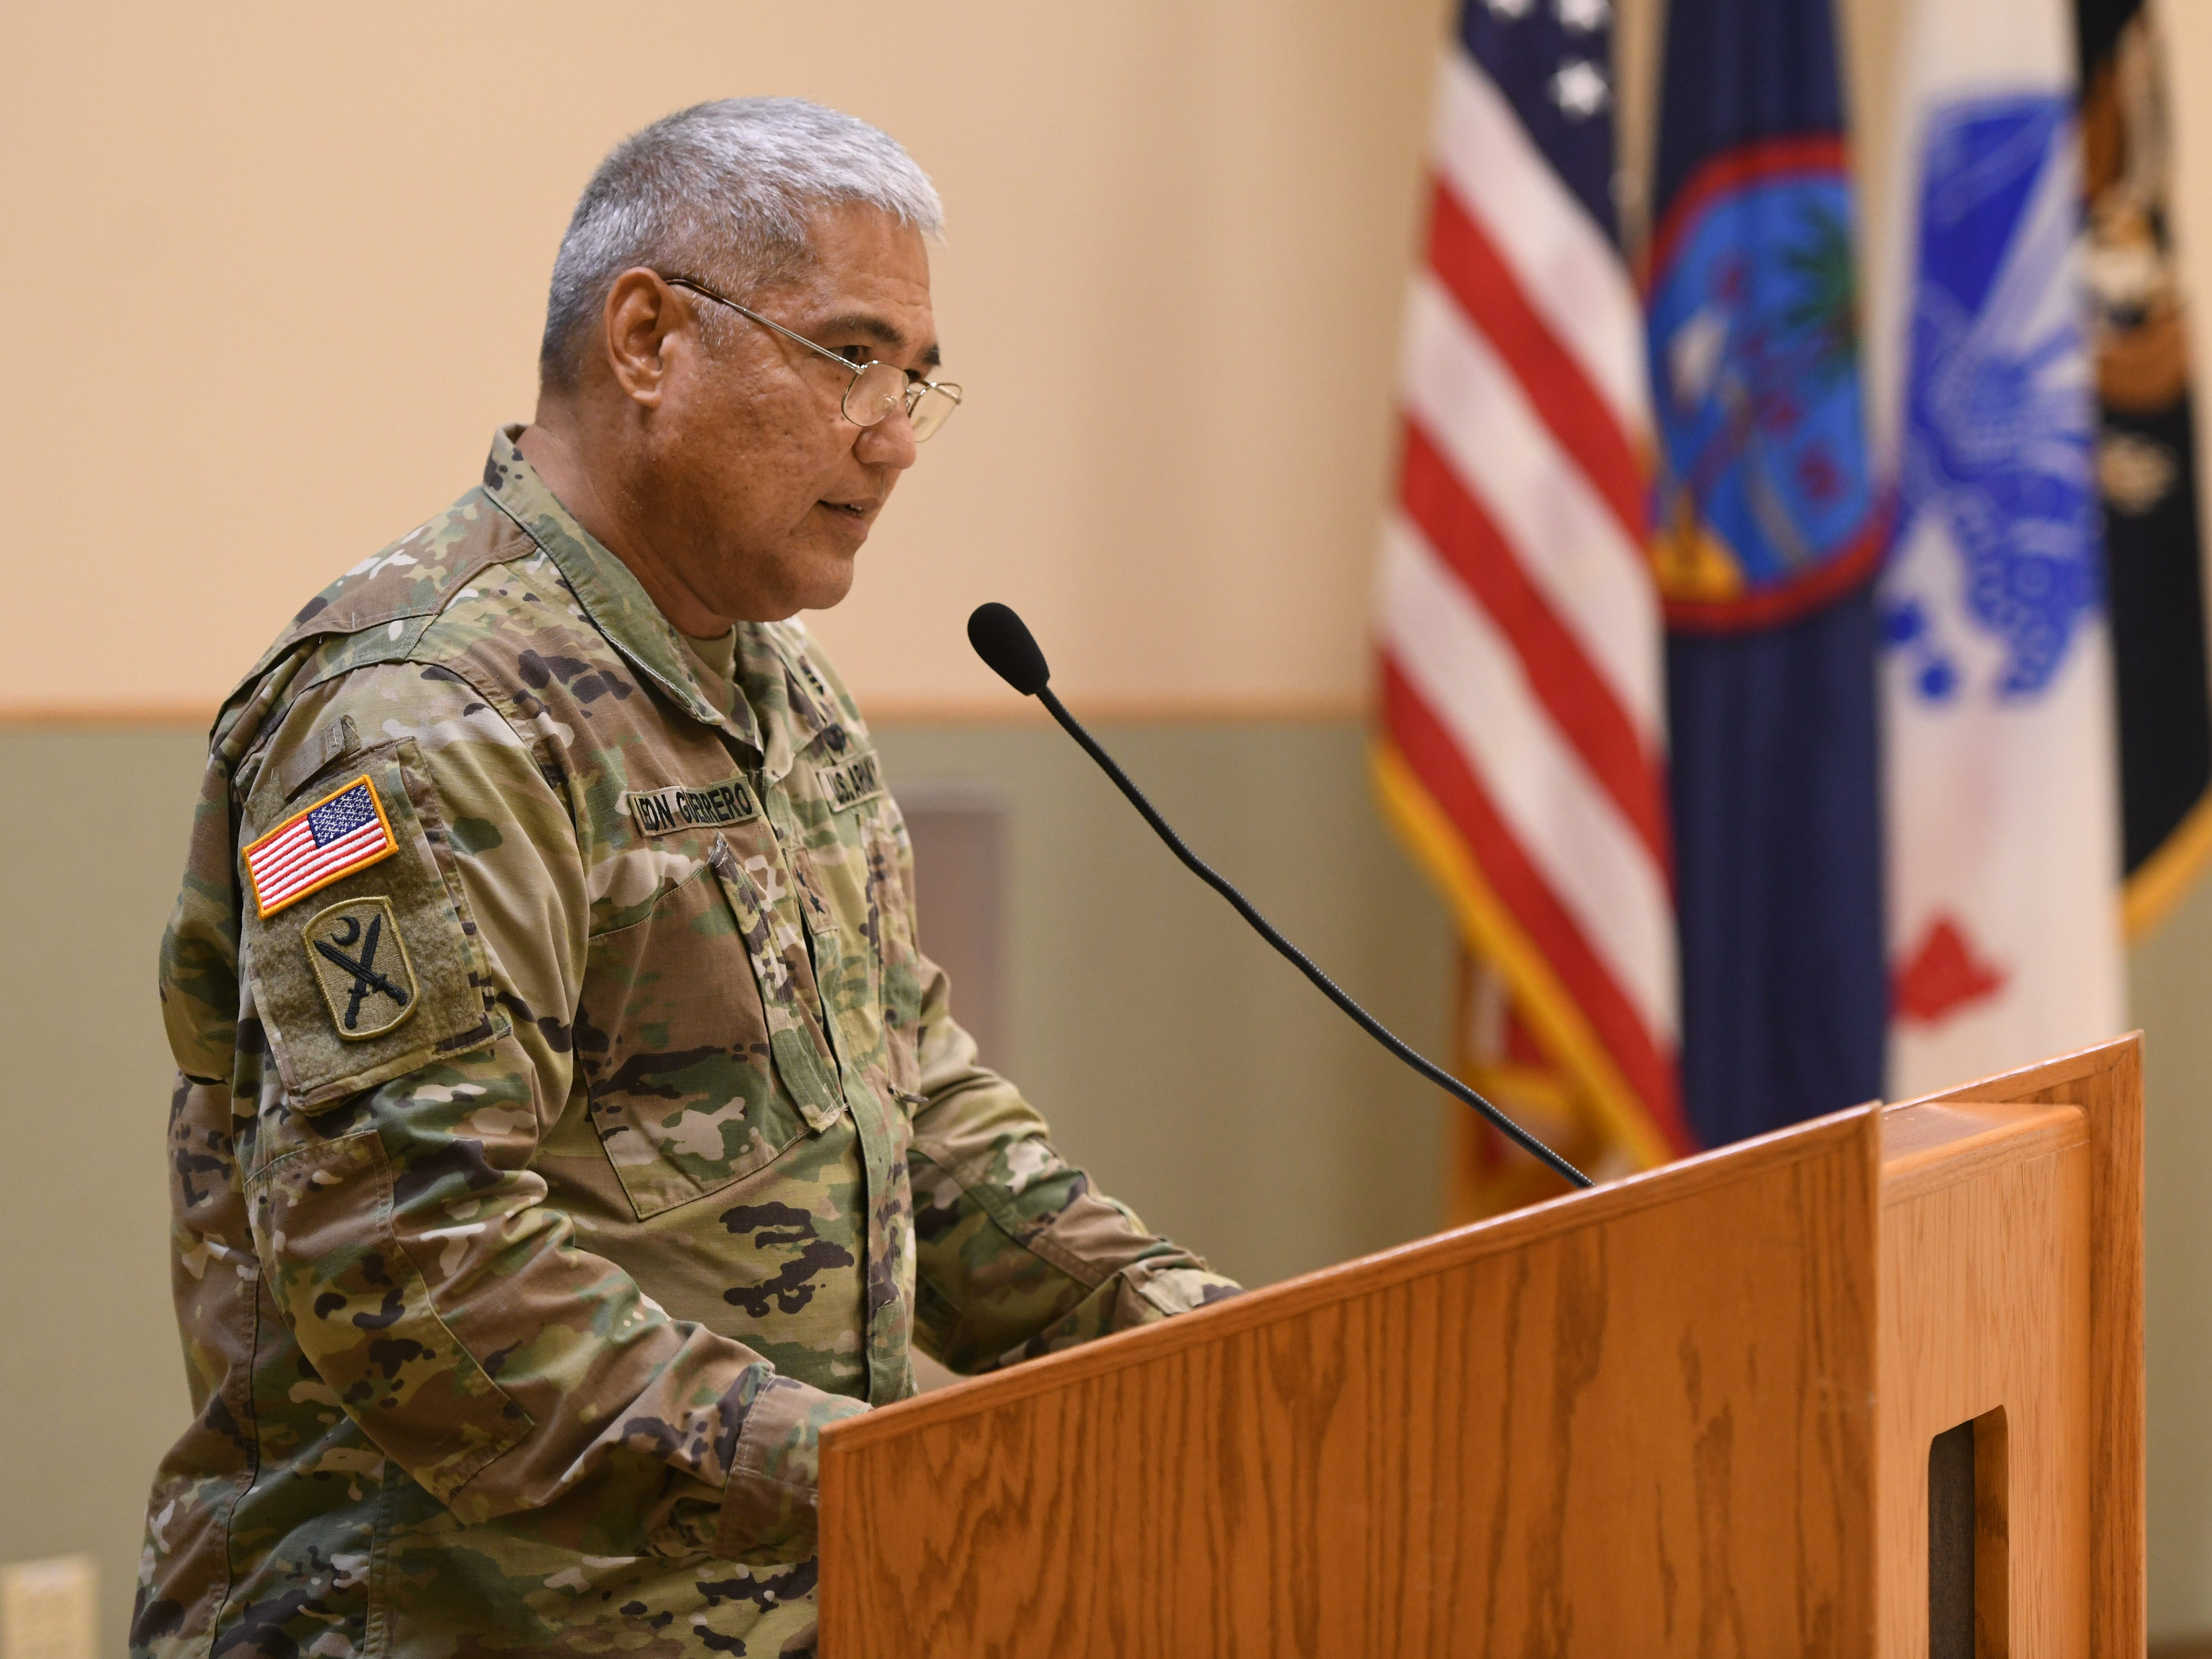 Guam Army National Guard Adjutant General Maj. Gen. Roderick Leon Guerrero addresses 71 soldiers of the Guard's 254th Security Forces 1st-294th Infantry Regiment, along with their families, friends and other supporters during a mobilization ceremony at the Guard's compound in Barrigada on Thursday, Jan. 3, 2019. The soldiers were recgonized during the event as they prepare to undertake a yearlong mission to provide security for the Terminal High Altitude Area Defense Site at Andersen Air Force Base, according to a Guard release.